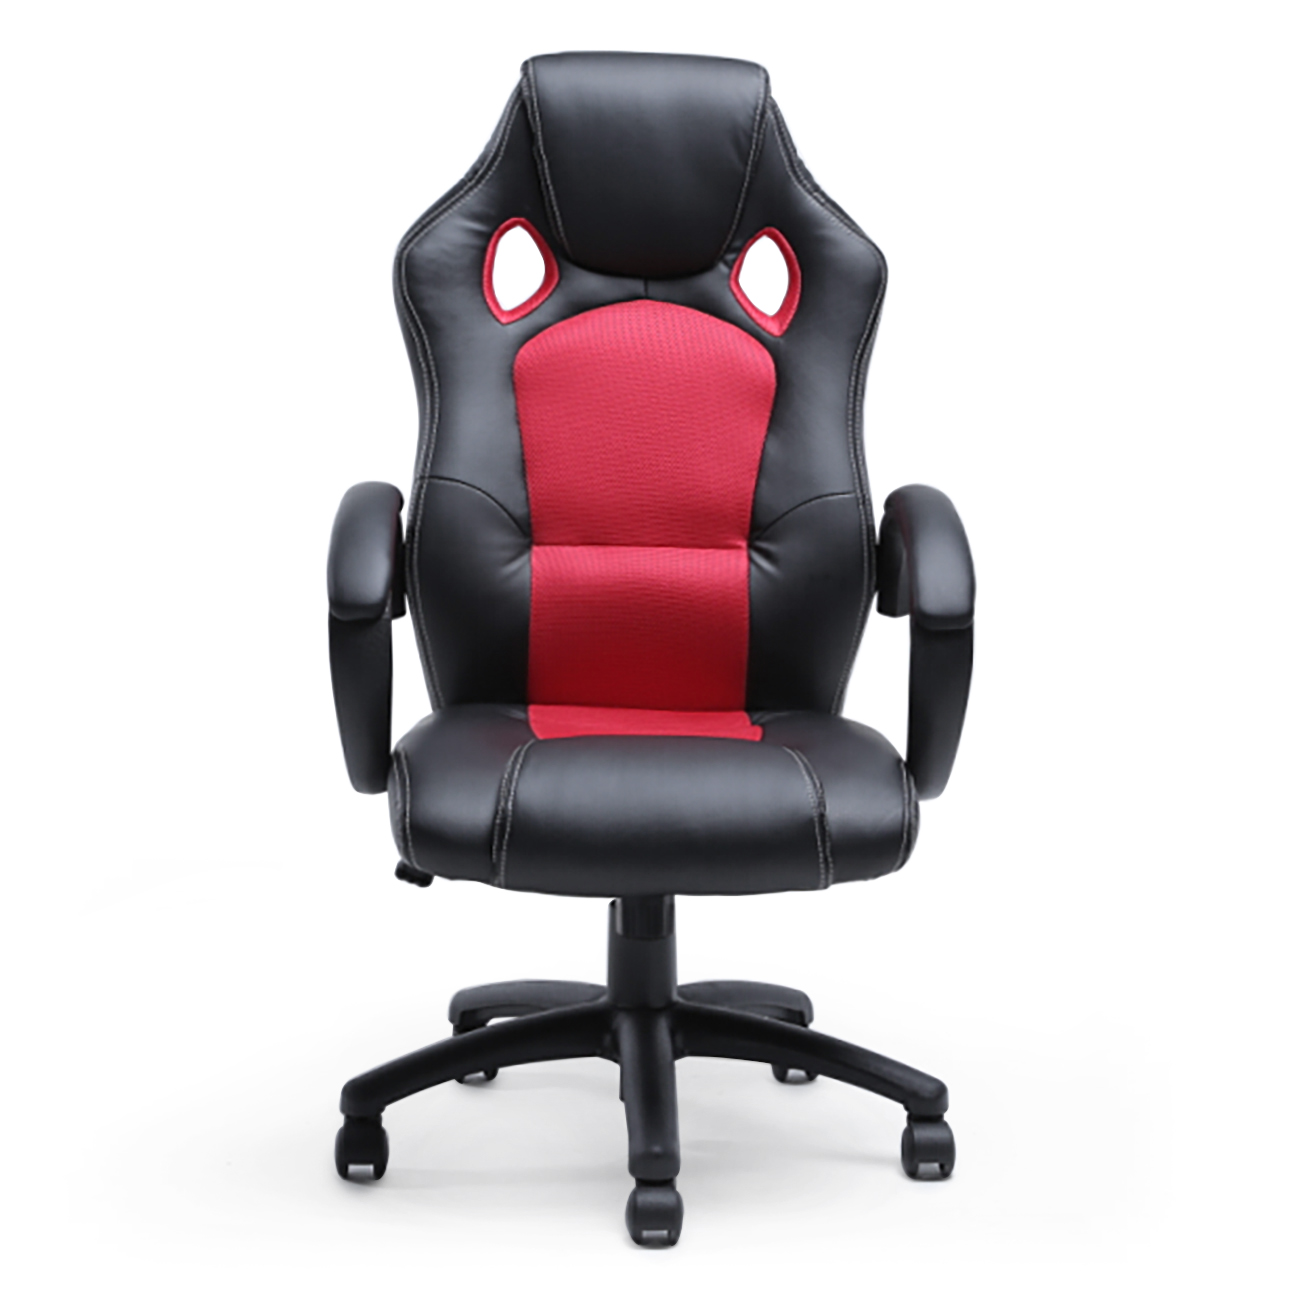 Racing Desk Chair Office Chair Ergonomic Computer Mesh Pu Leather Desk Seat